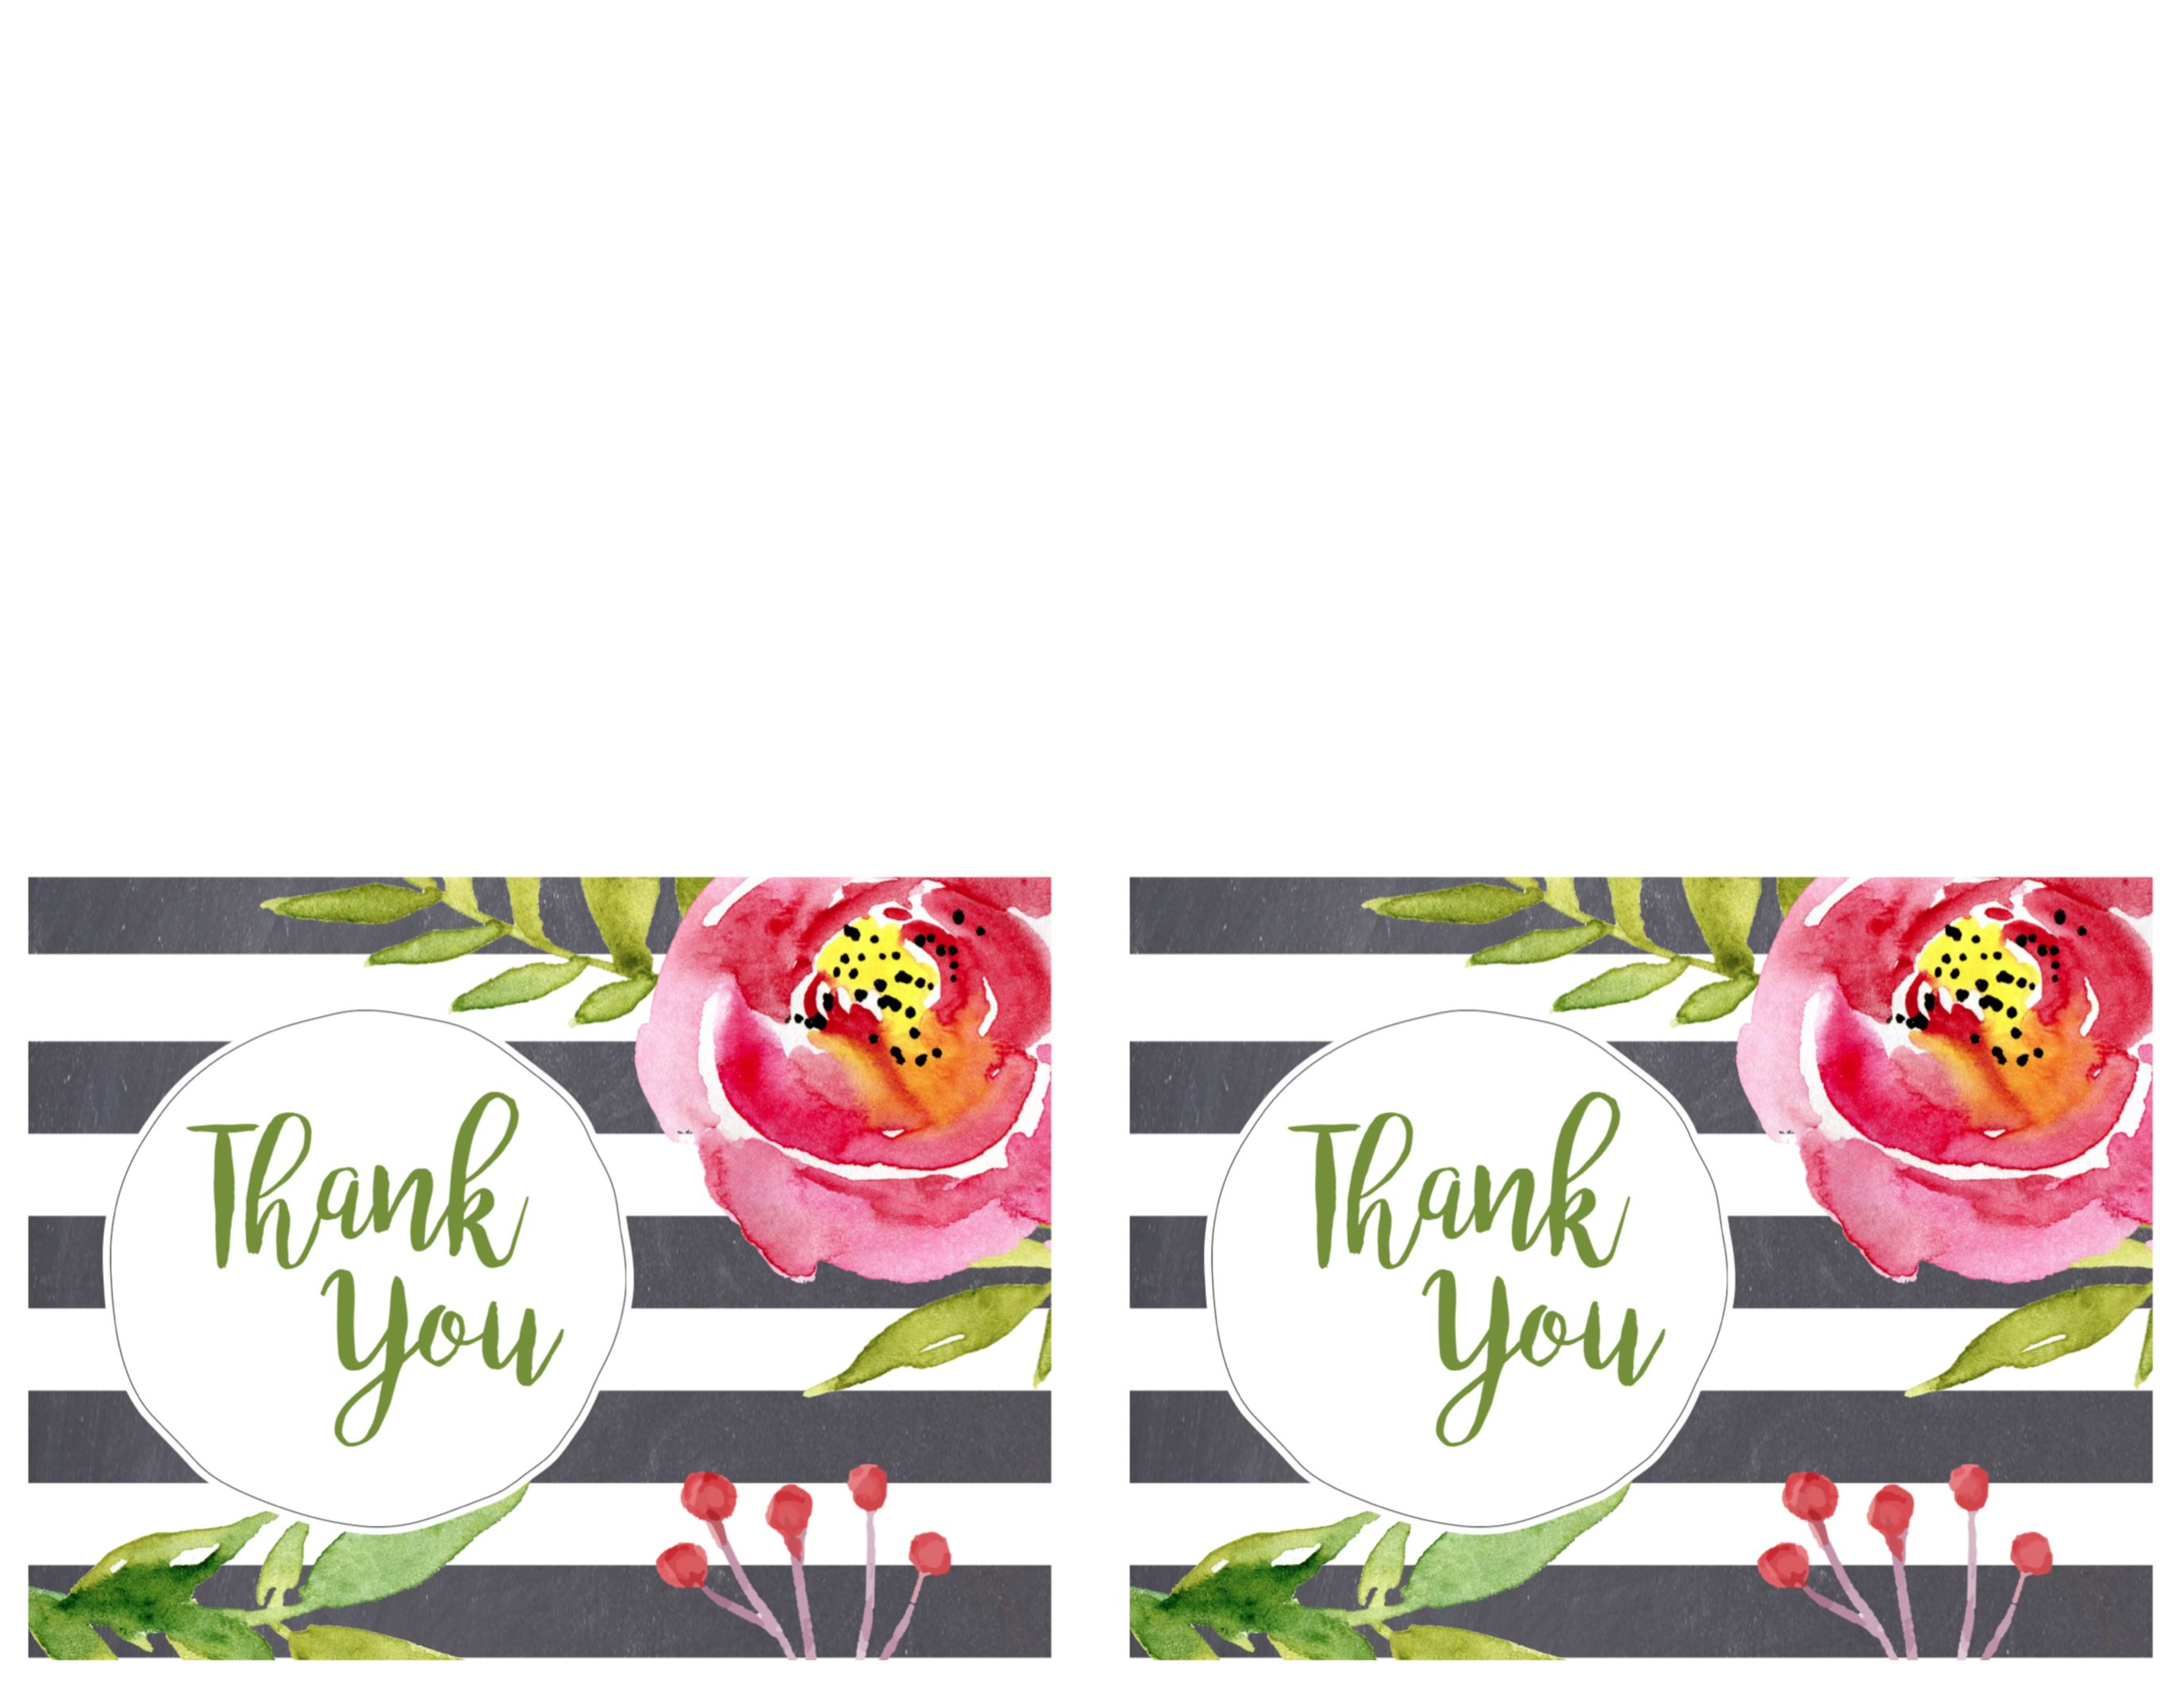 Papertraildesign wp content uploads 2017 02 flower thank you papertraildesign wp content uploads 2017 02 flower thank you izmirmasajfo